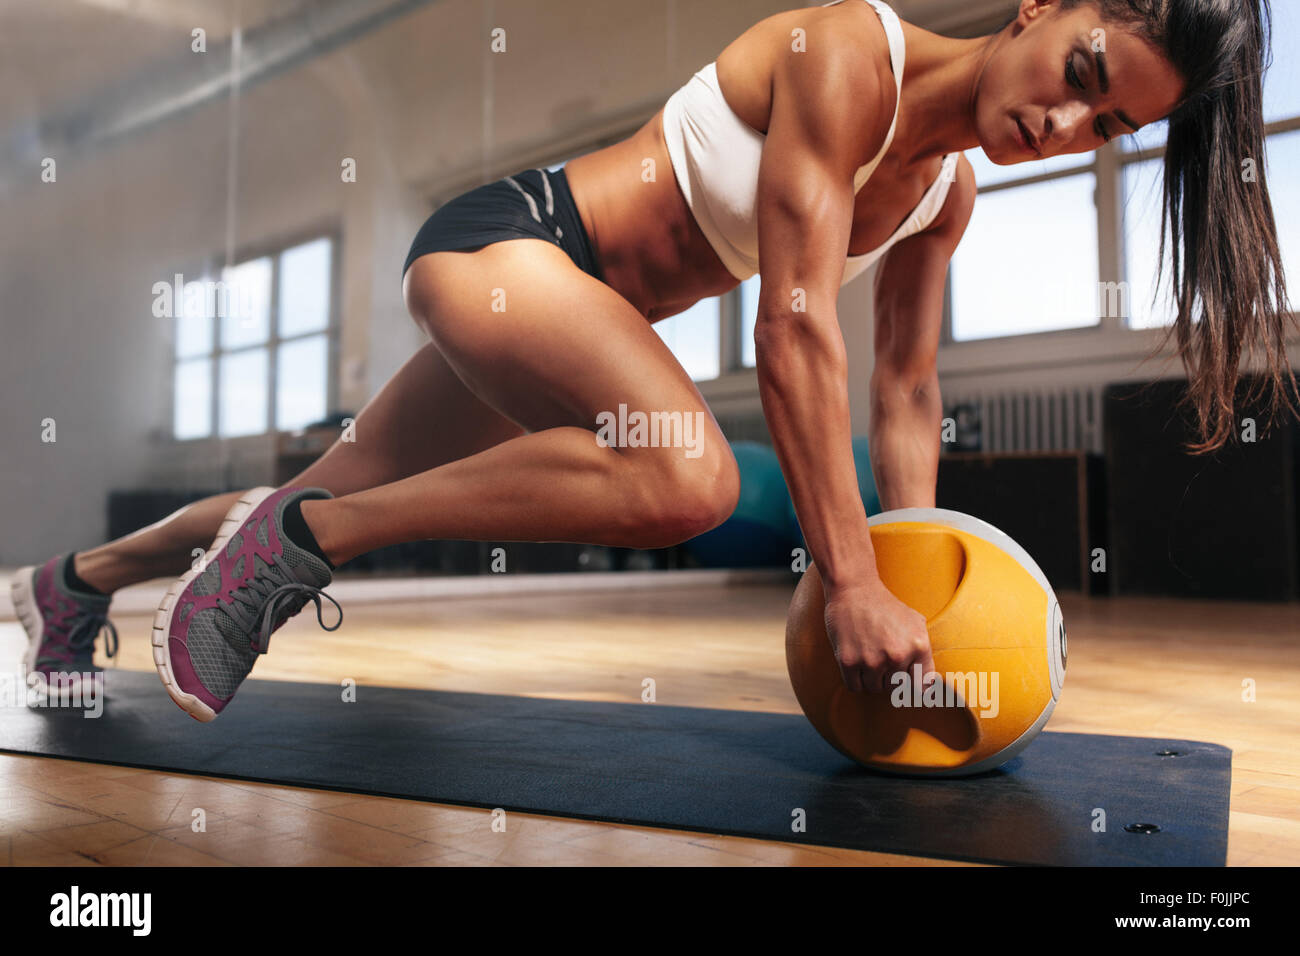 Muscular woman doing intense core workout in gym. Strong female doing core exercise on fitness mat with kettlebell - Stock Image